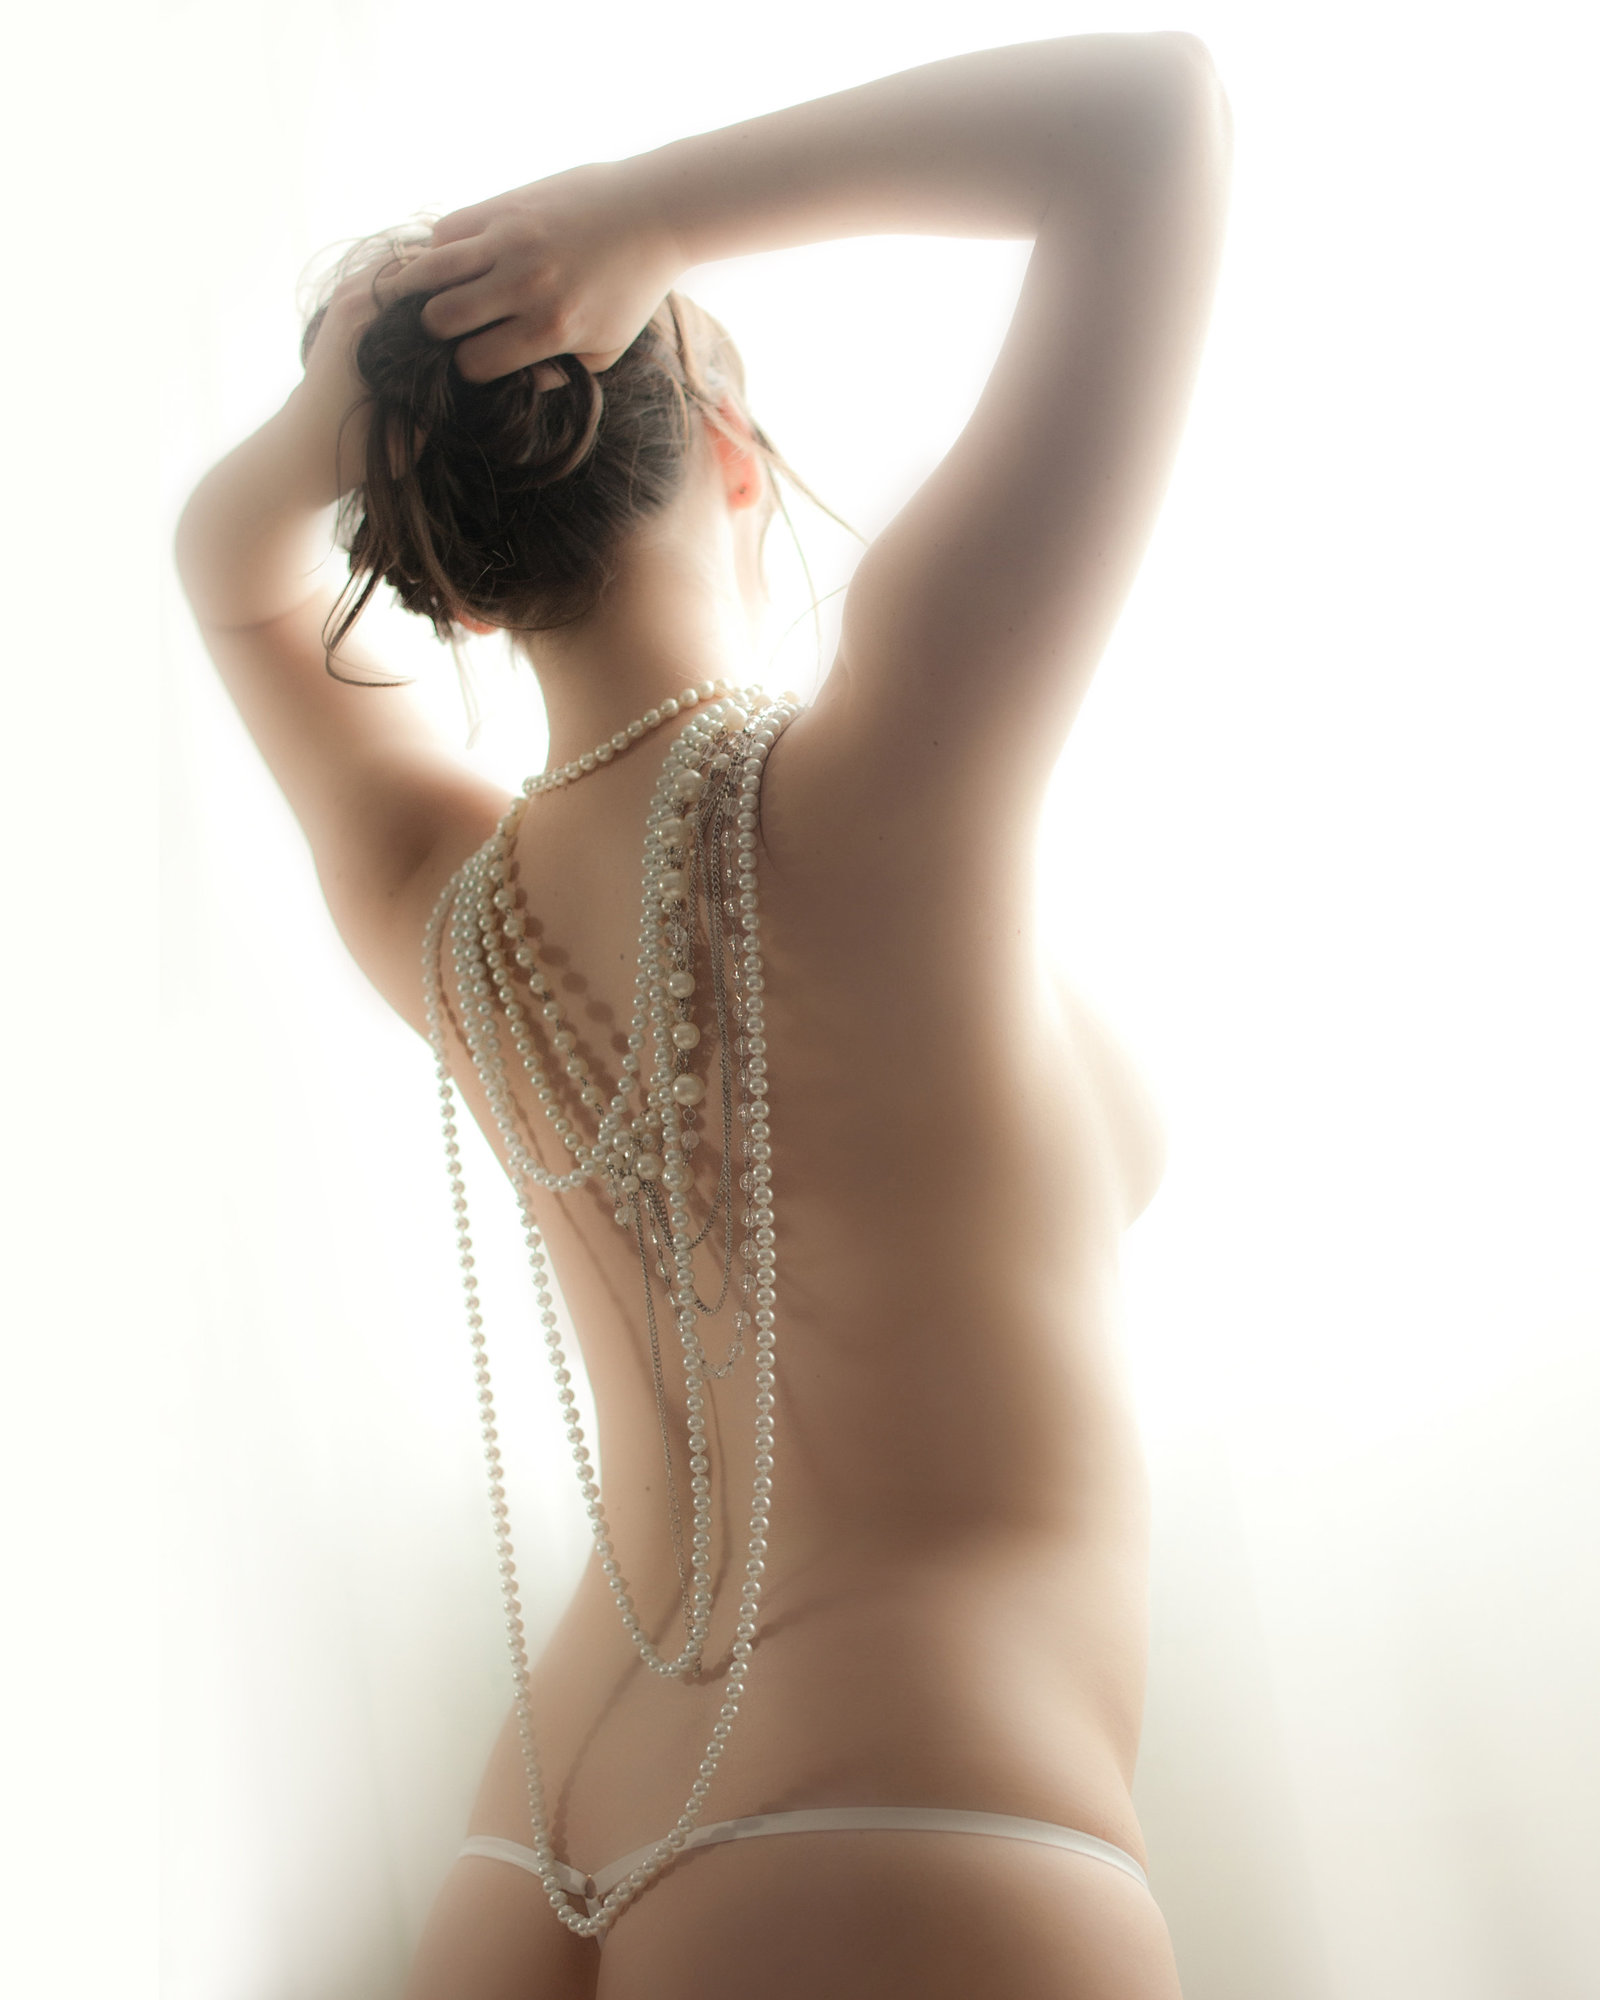 minneapolis-boudoir-photography-513